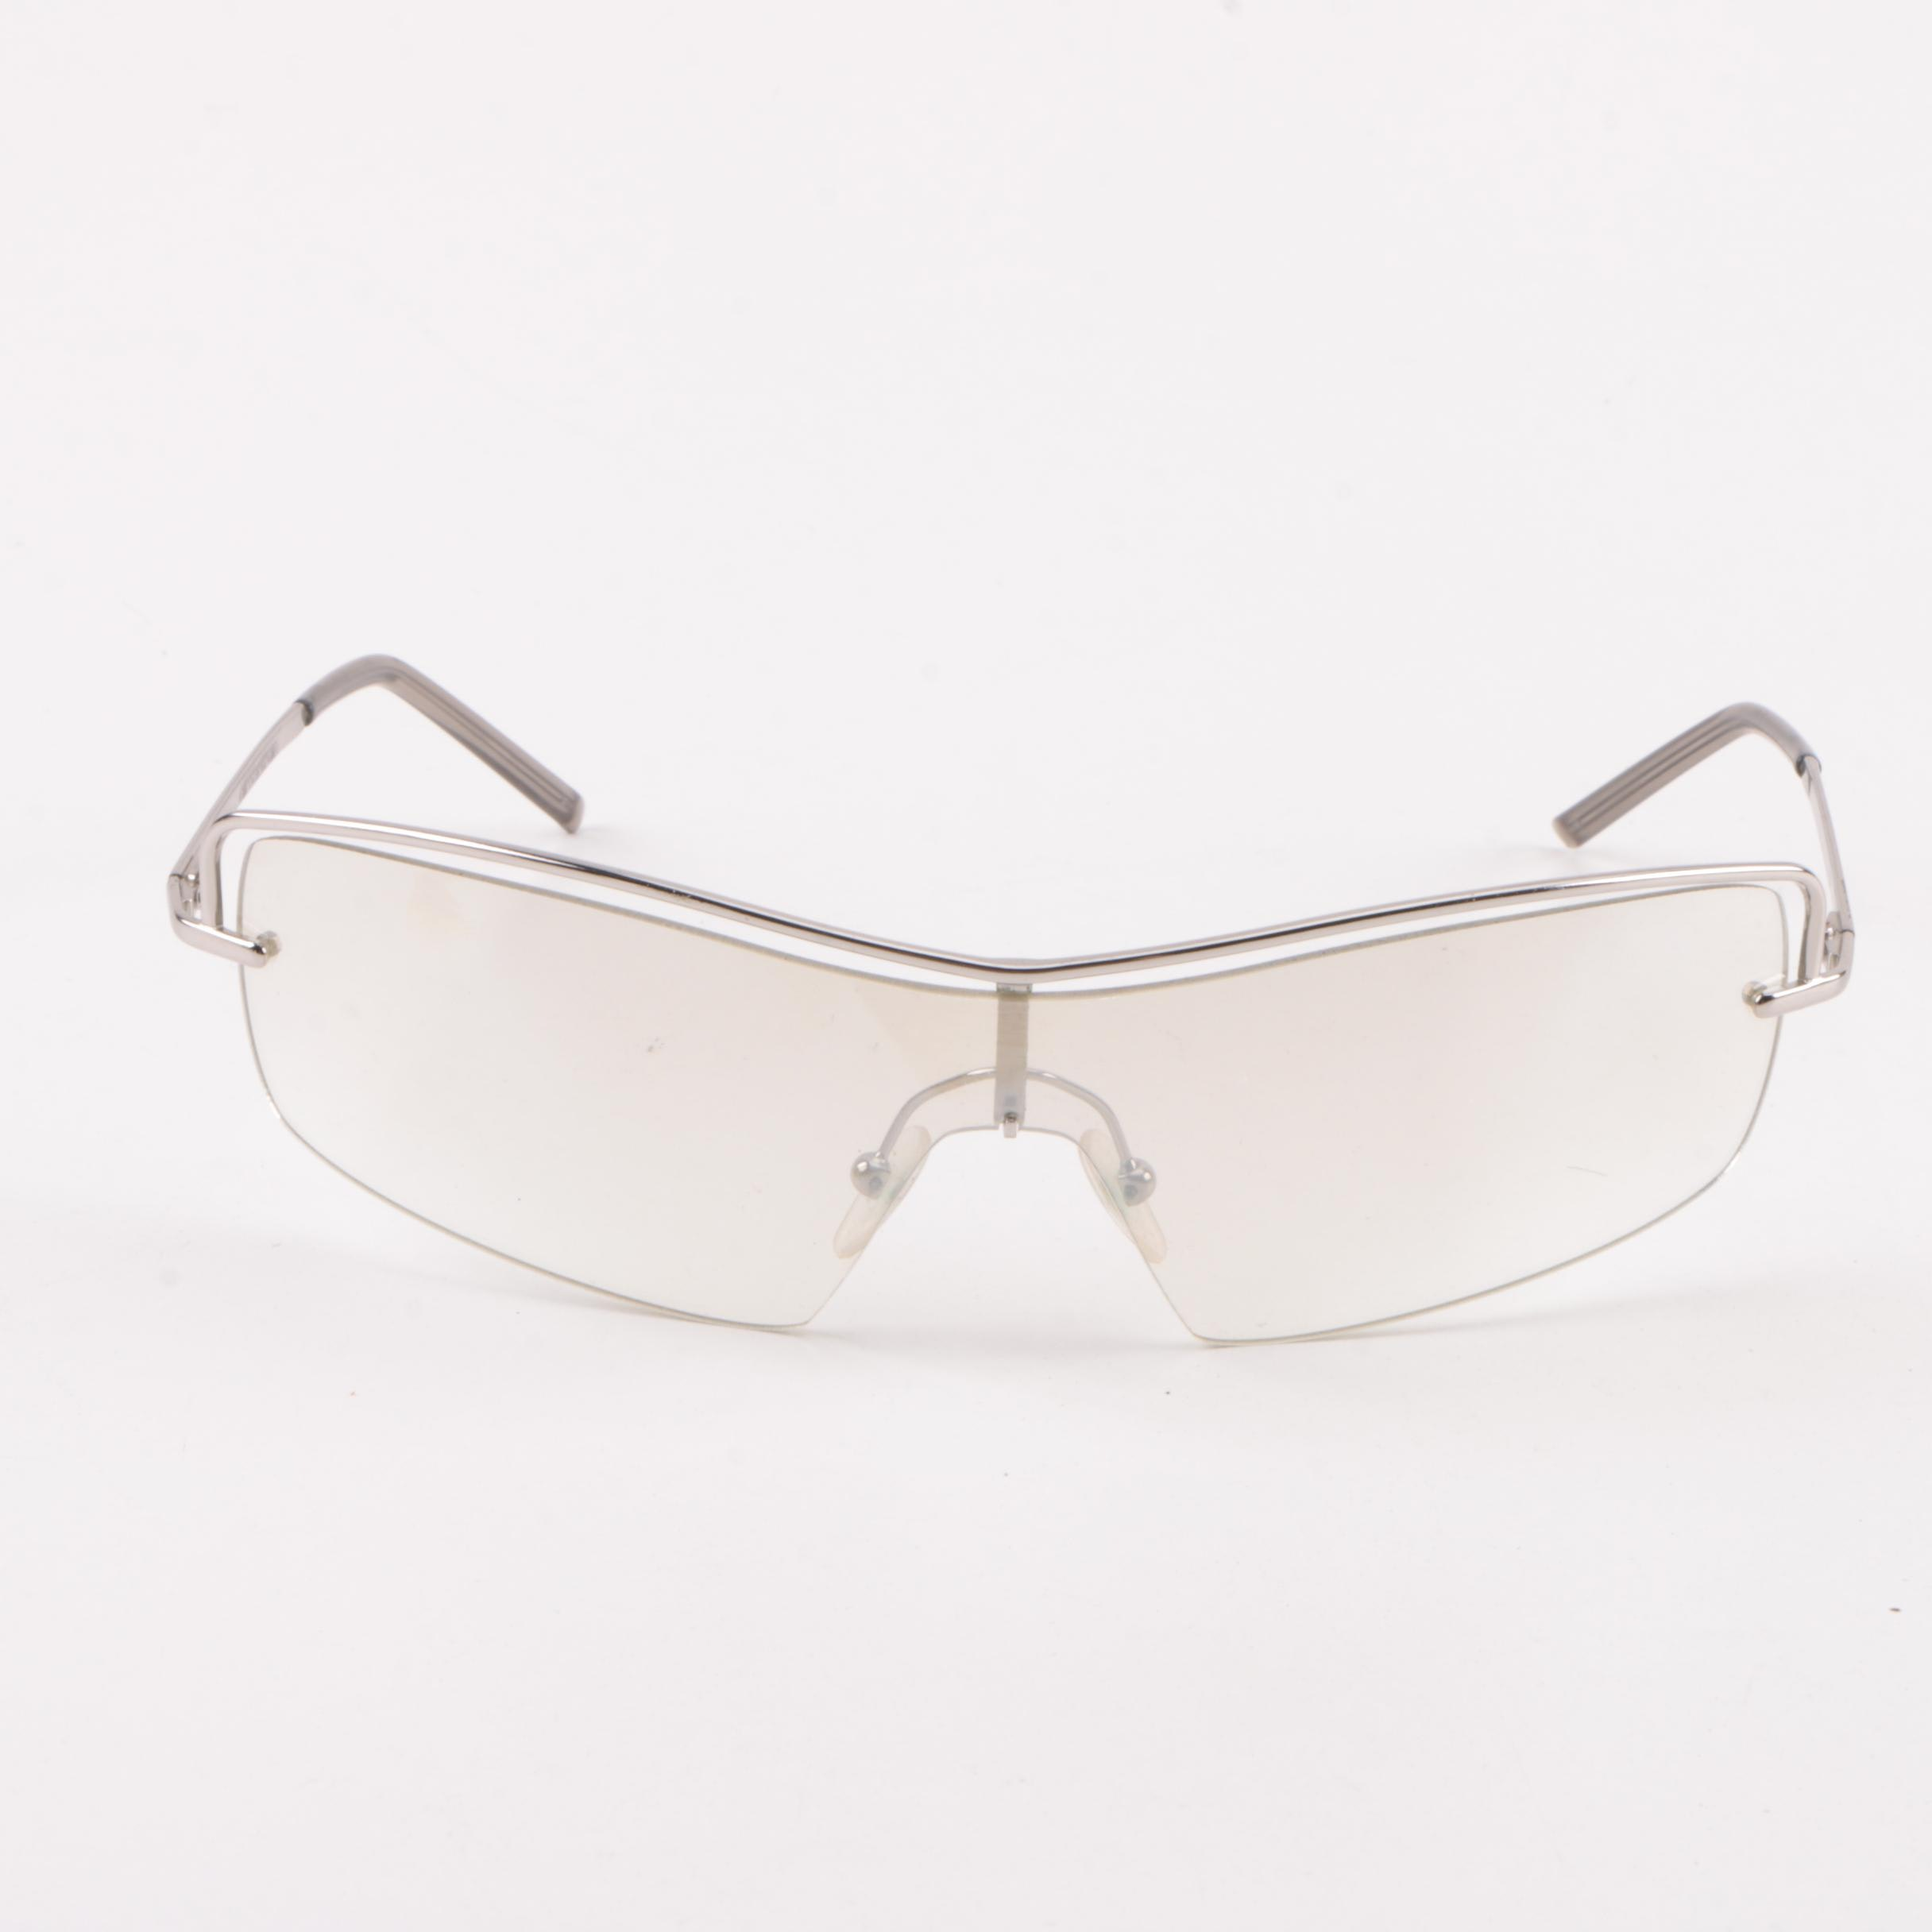 Gucci Clear Mirror Frame Shield Sunglasses